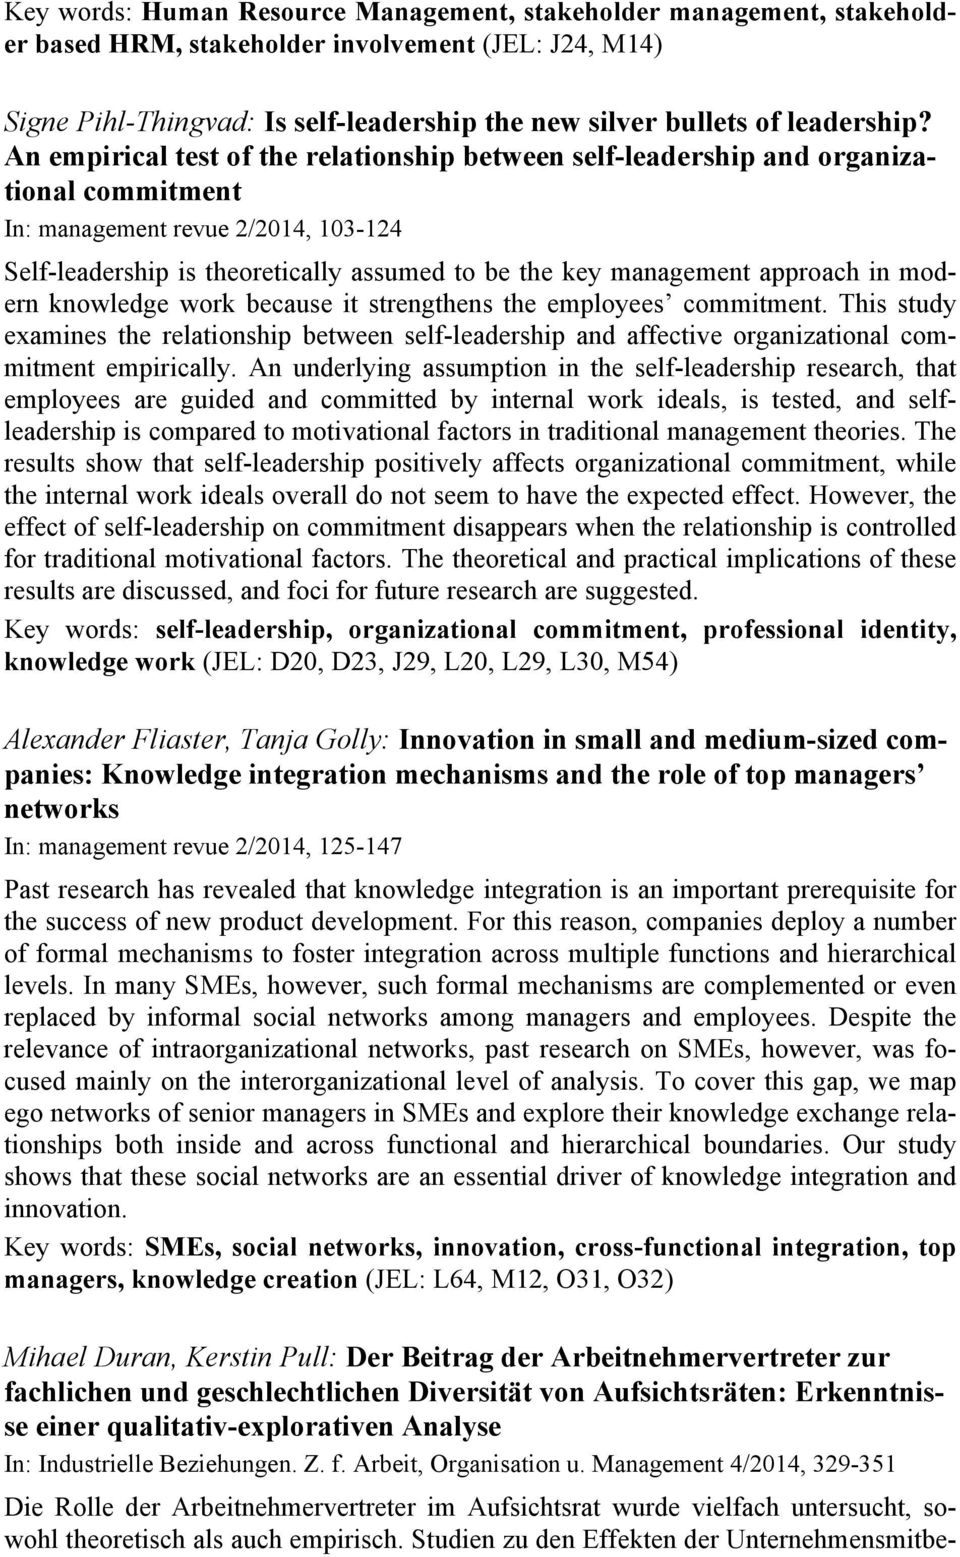 An empirical test of the relationship between self-leadership and organizational commitment In: management revue 2/2014, 103-124 Self-leadership is theoretically assumed to be the key management